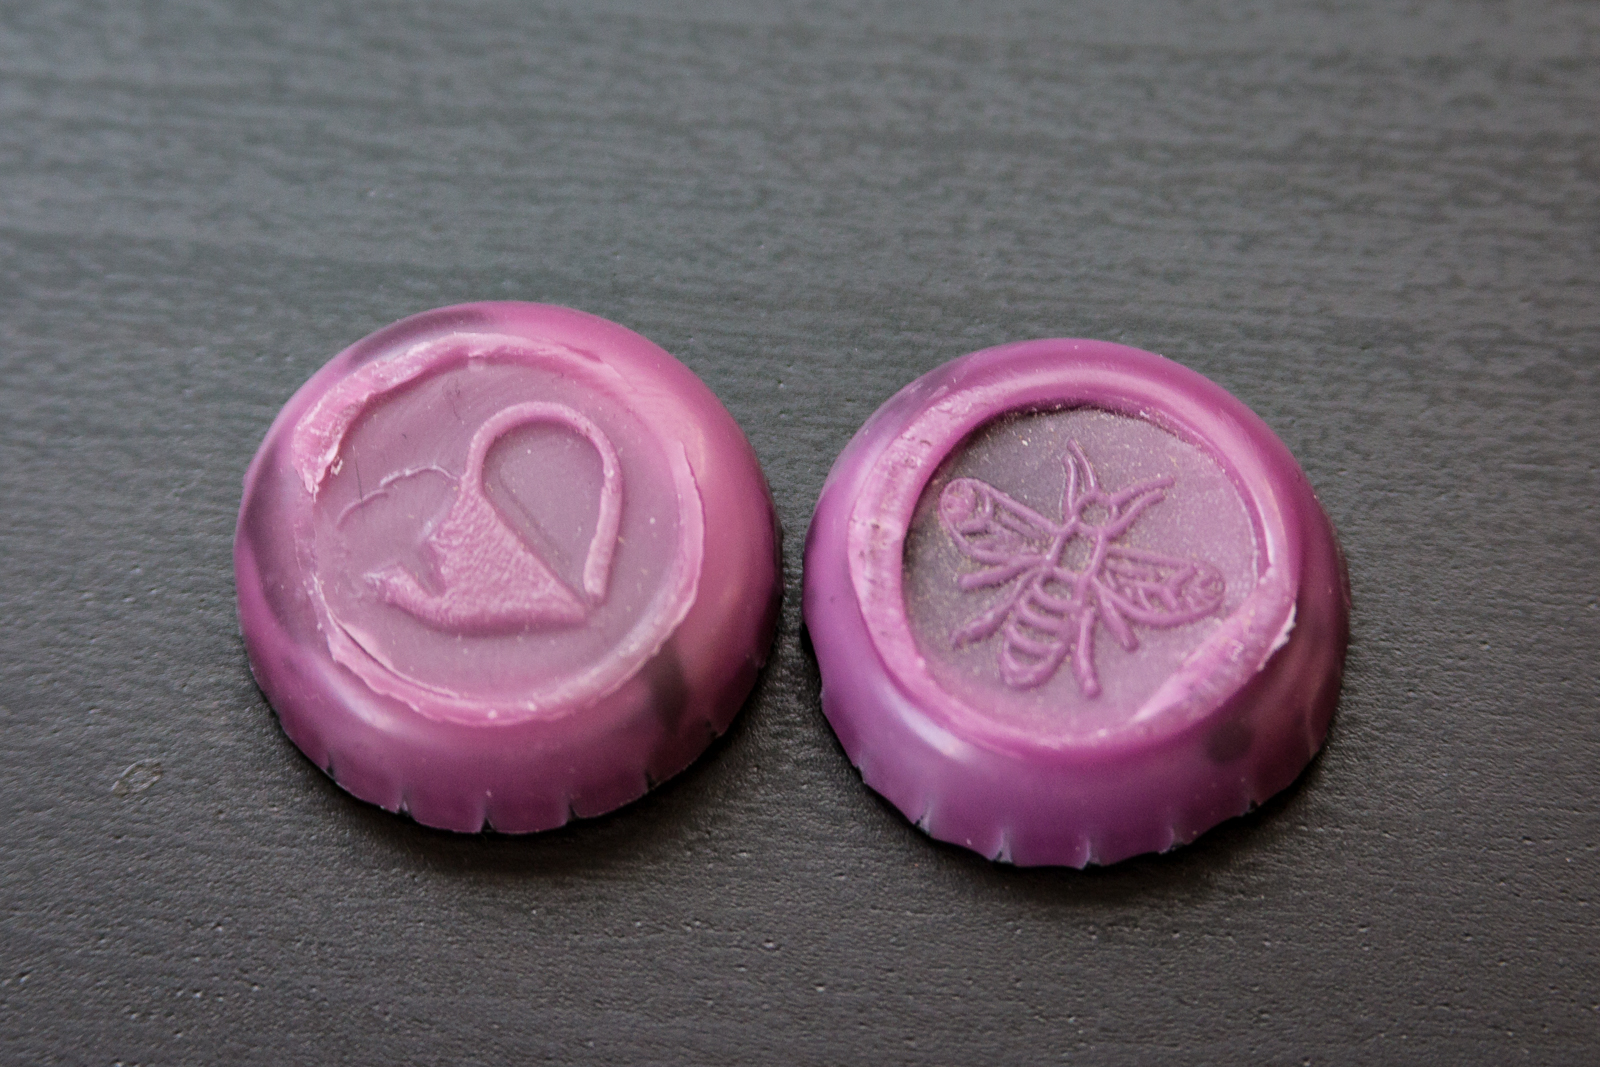 Plan Bee and Newburgh Wax-Stamped Bottle Caps